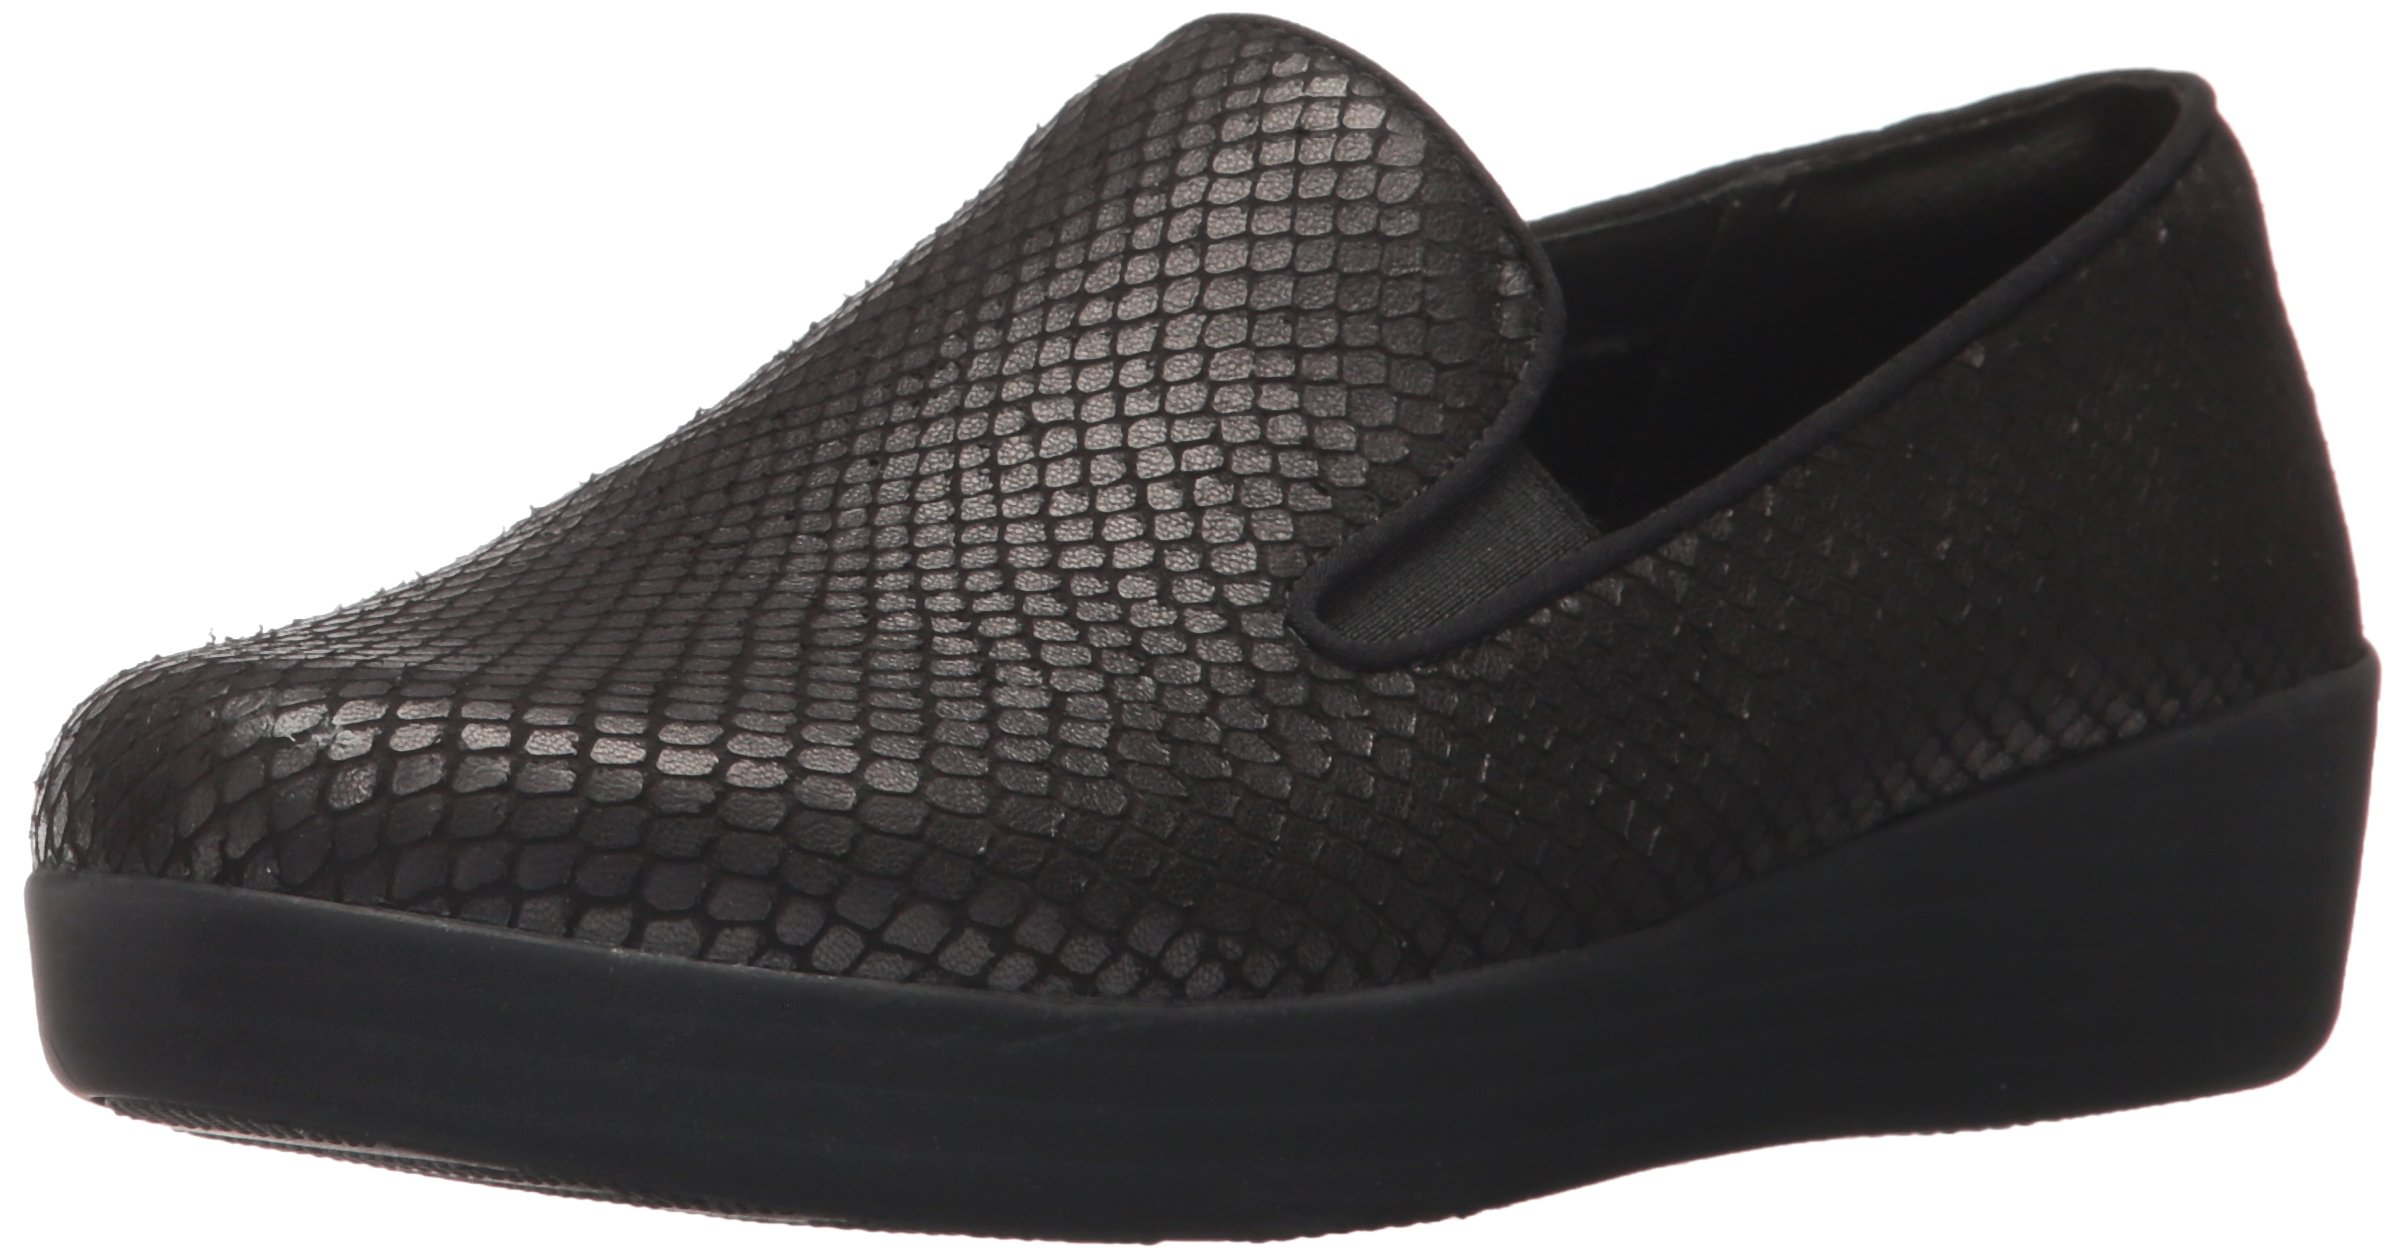 FitFlop Women's Superskate Loafer, Black, 9 M US